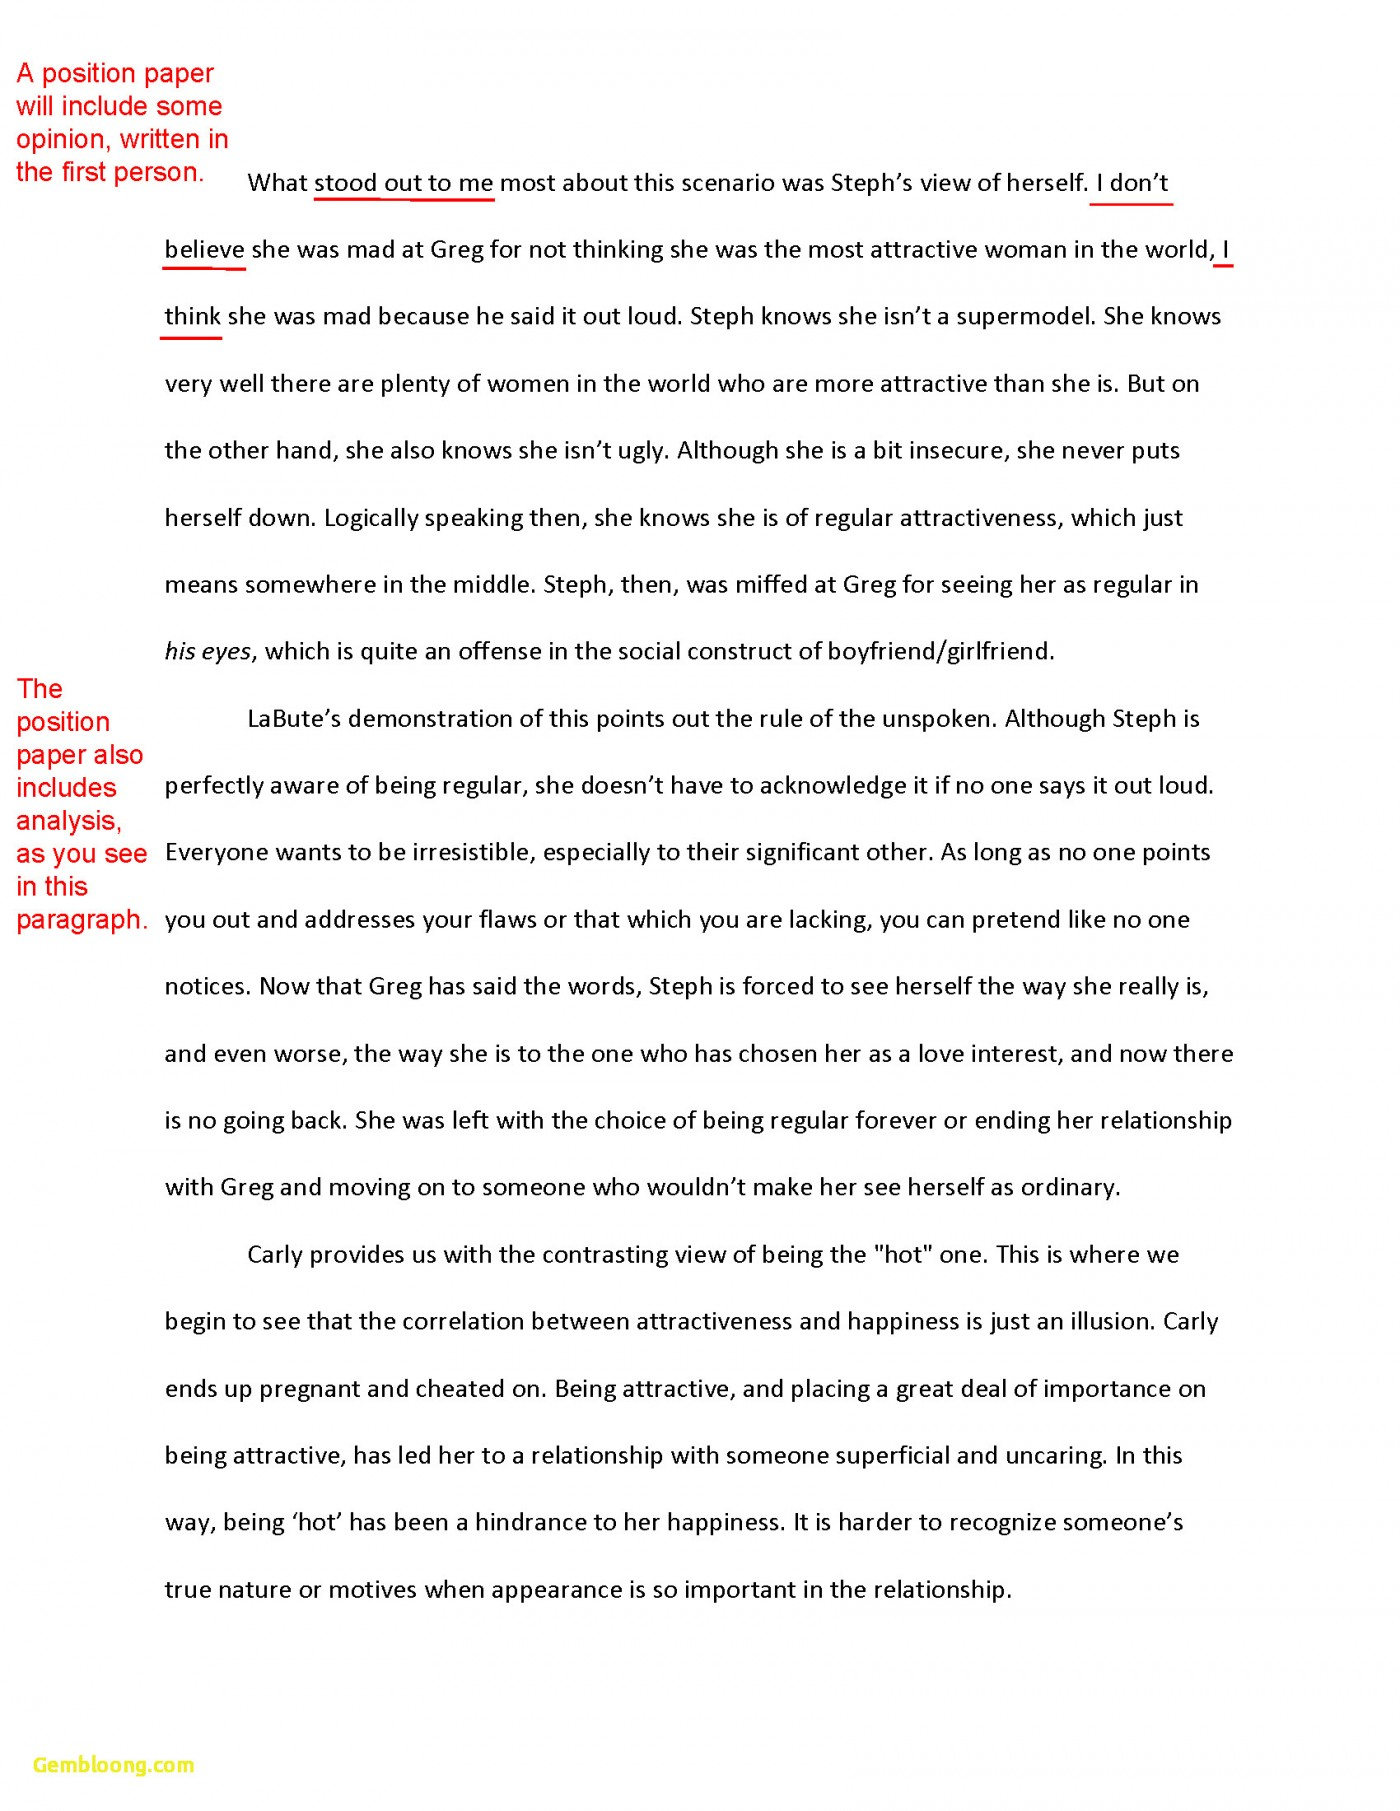 005 Apa Format Essay Example Sample New How To Write Response Paper Stupendous Pdf Title Page Purdue Owl 1400